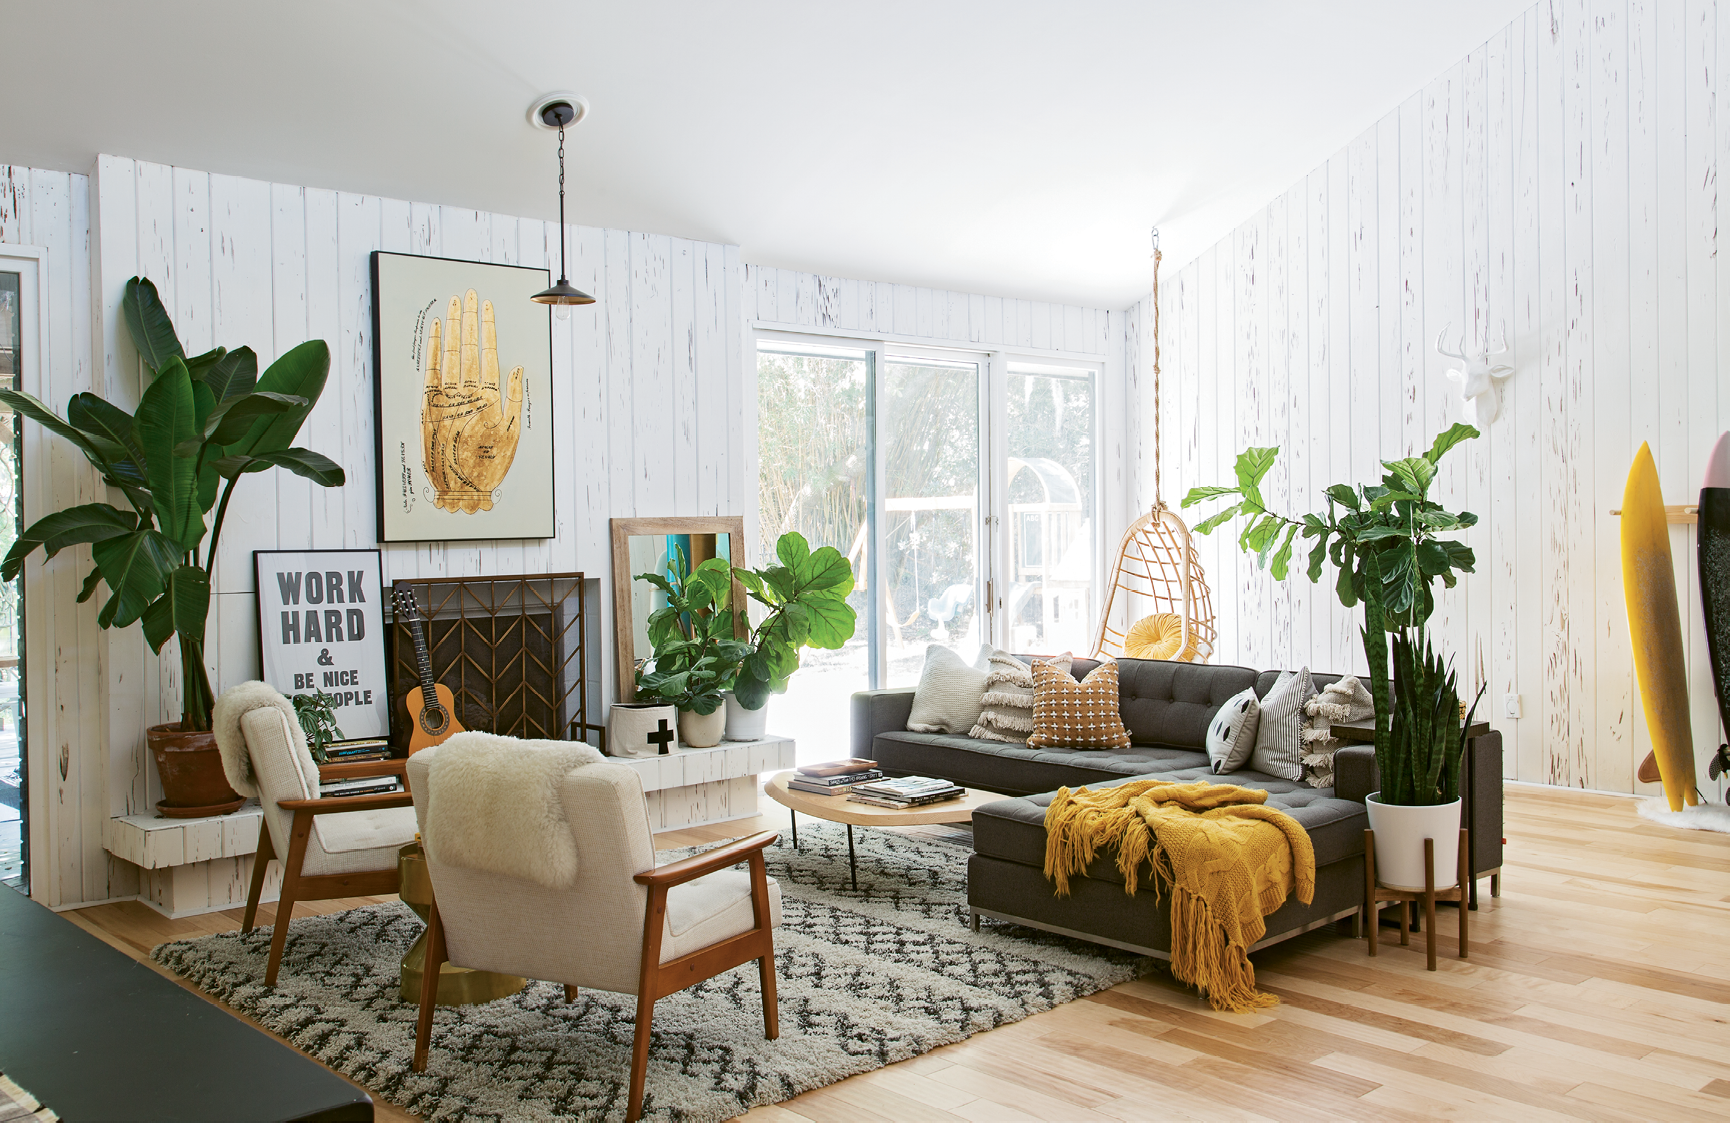 The duo revamped the living room by whitewashing existing pecky cypress walls, swapping red laminate flooring for hardwoods, and adding California-cool furnishings and accessories.